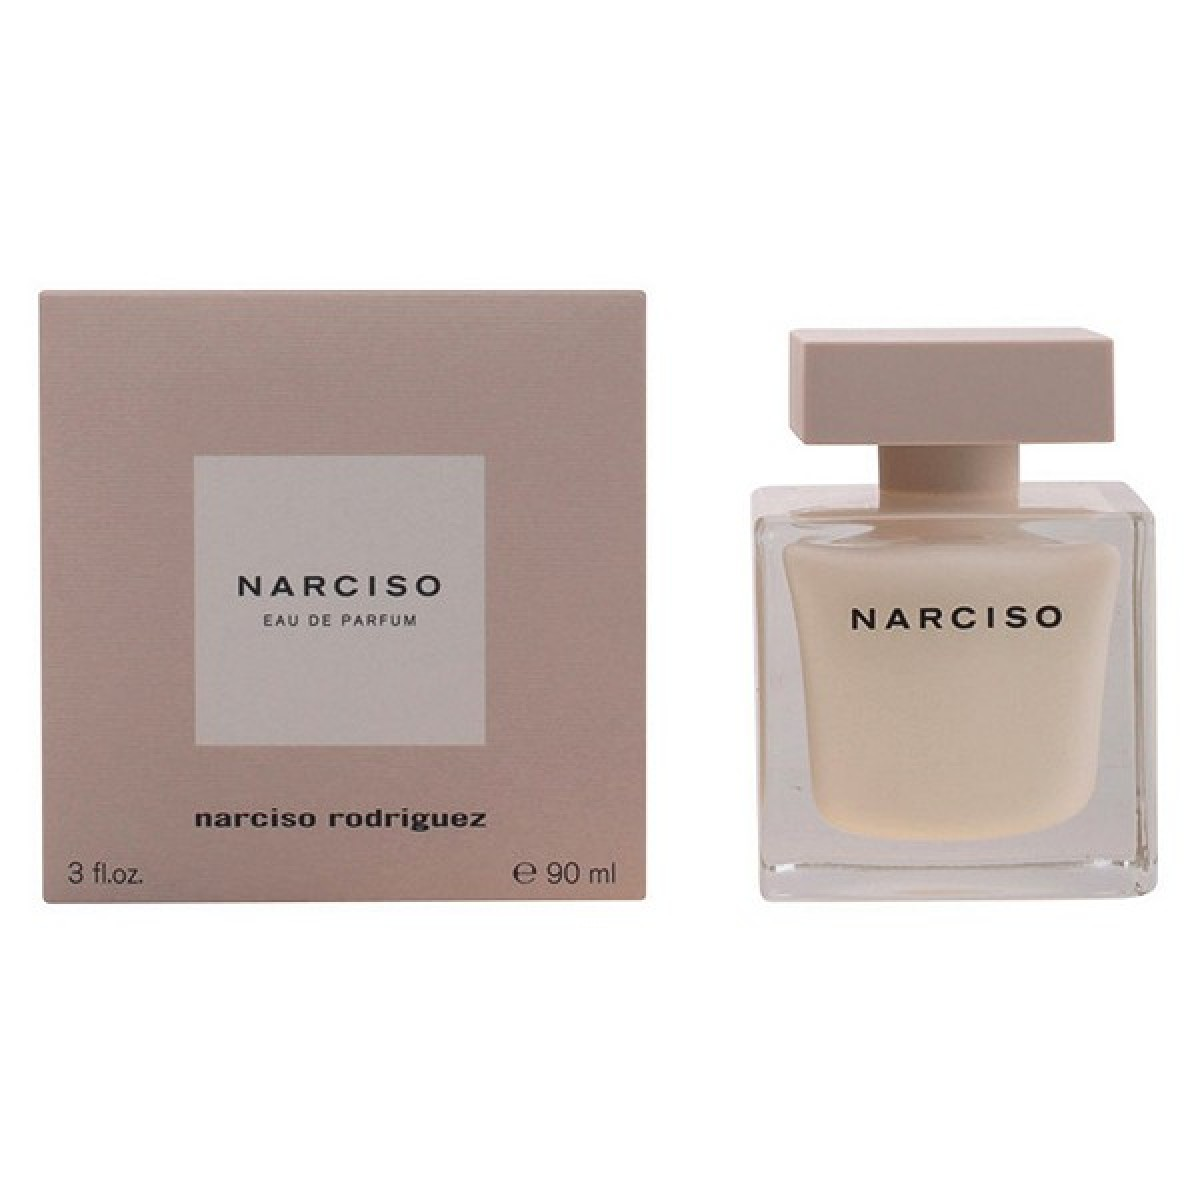 Dameparfume Narciso Narciso Rodriguez EDP - Kapacitet: 50 ml